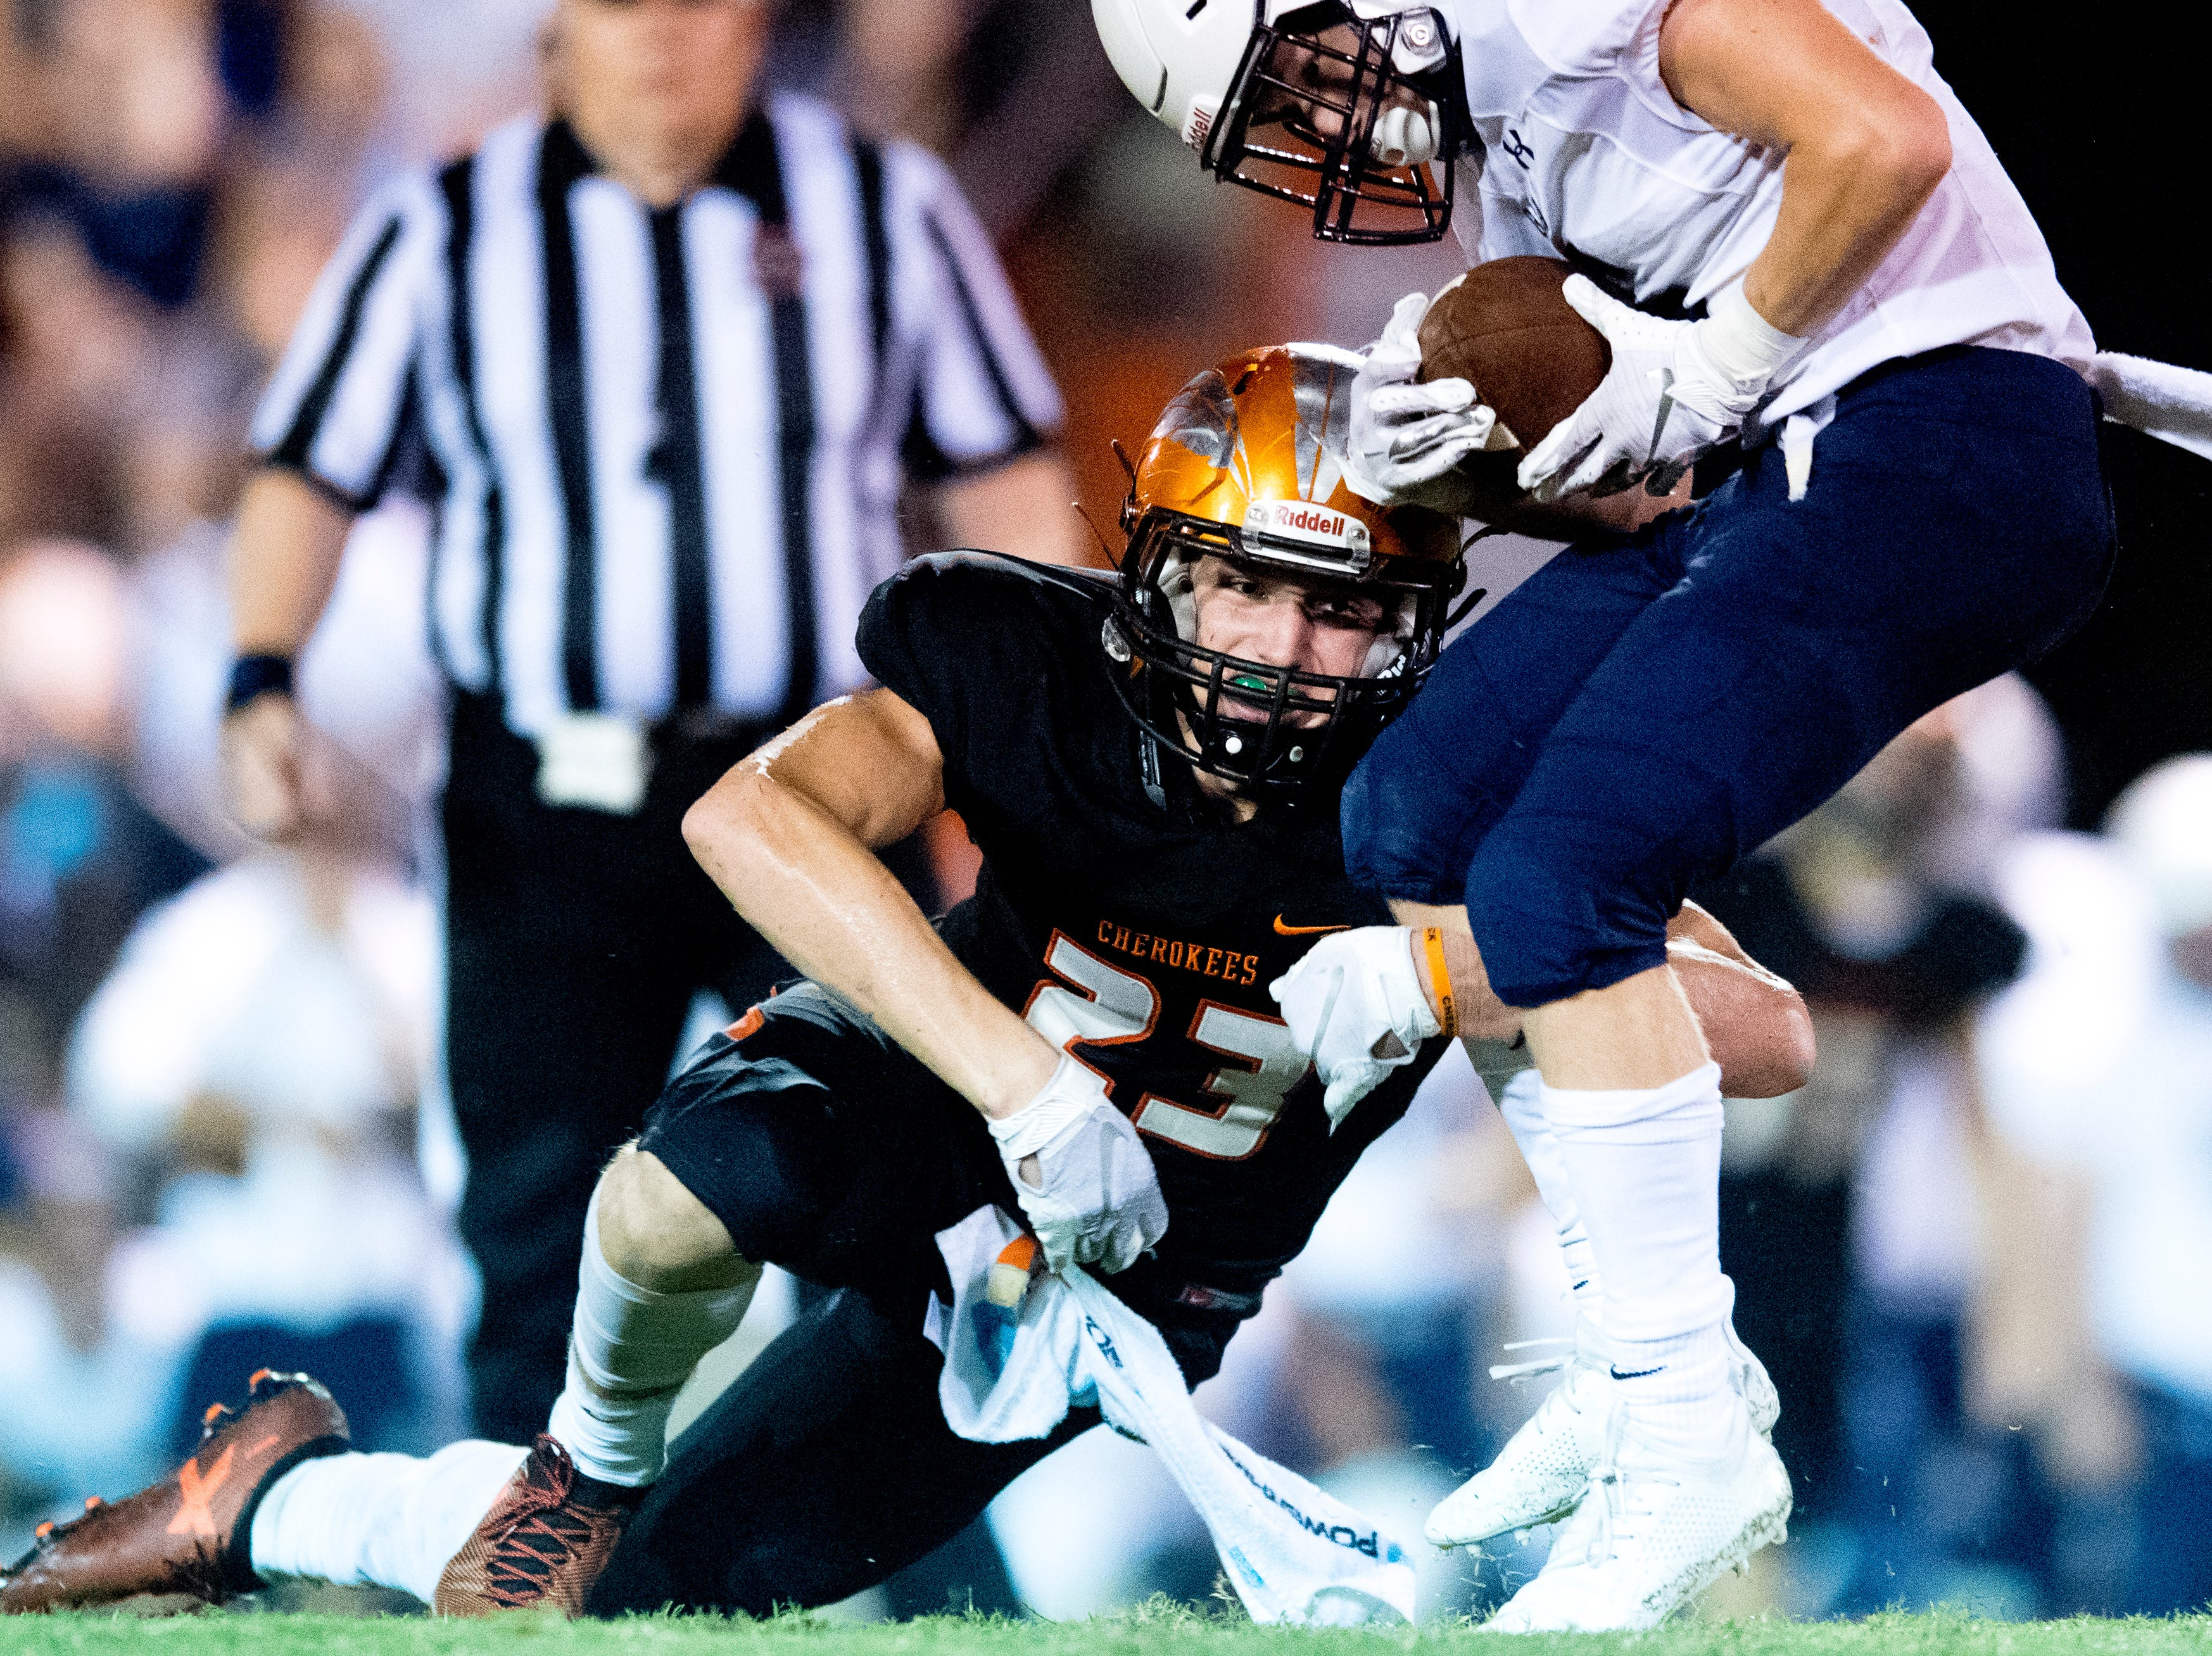 Greenback's Holden Willis (23) defends against Grace Christian's Grant Warwick (6) during a football game between Greenback and Grace Christian at Greenback High School in Greenback, Tennessee on Thursday, September 20, 2018.